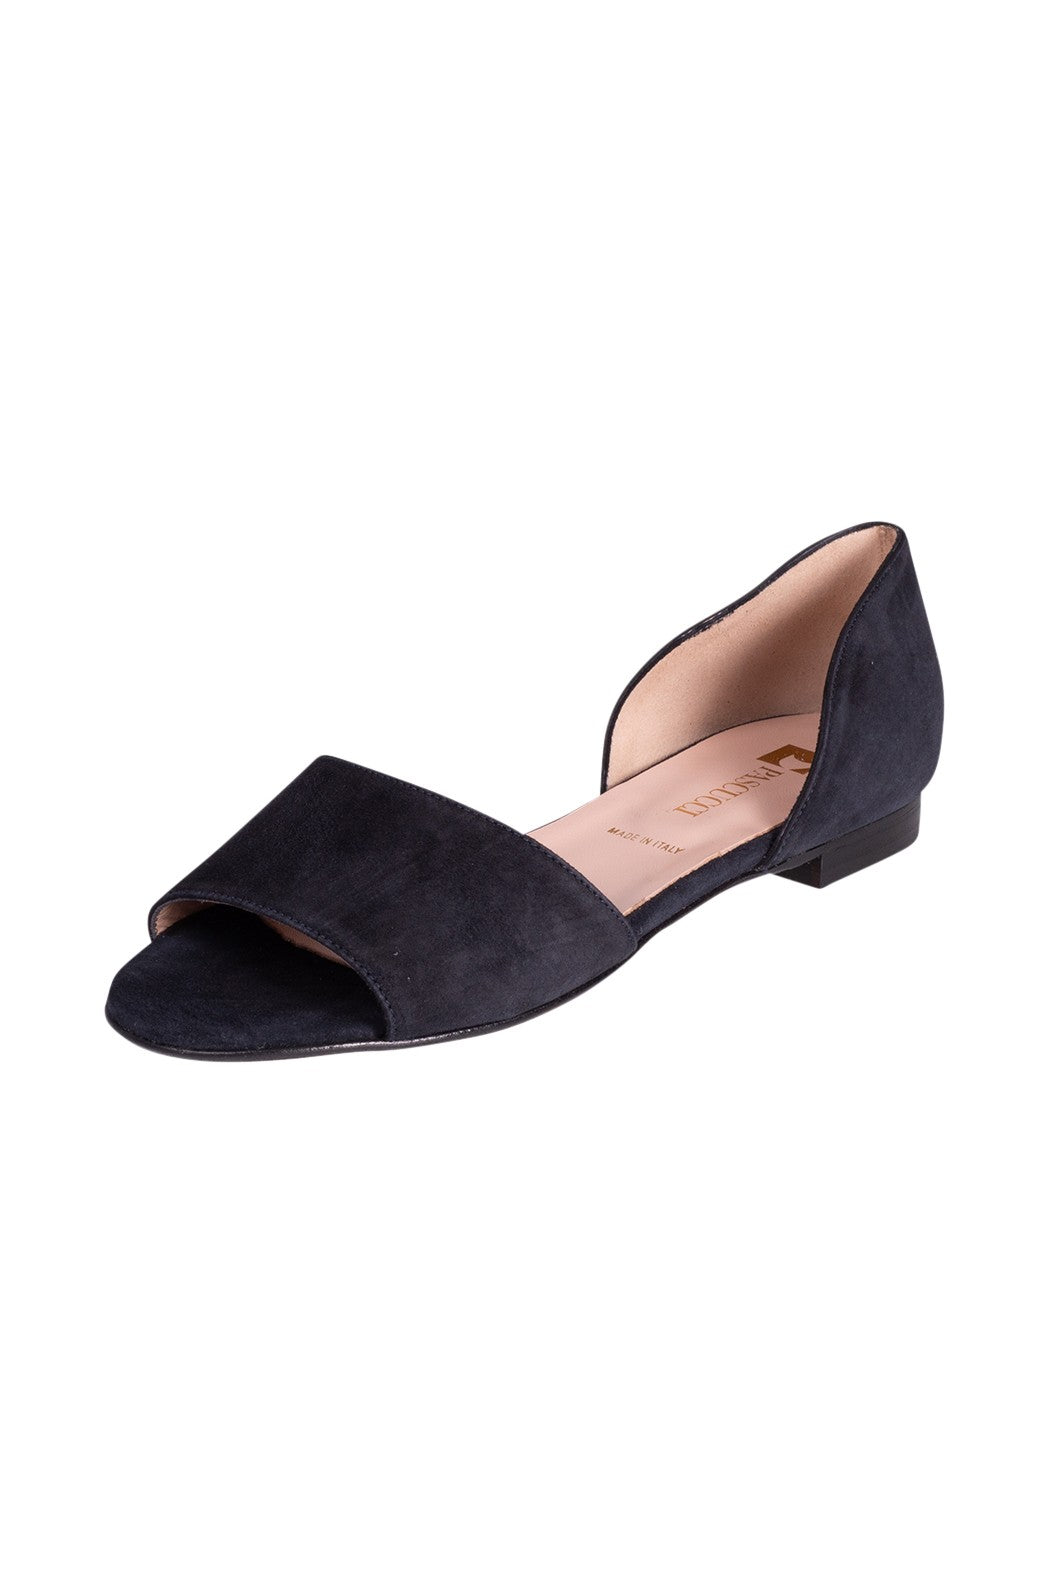 MIRABELLA Pascucci Navy Suede Sandal